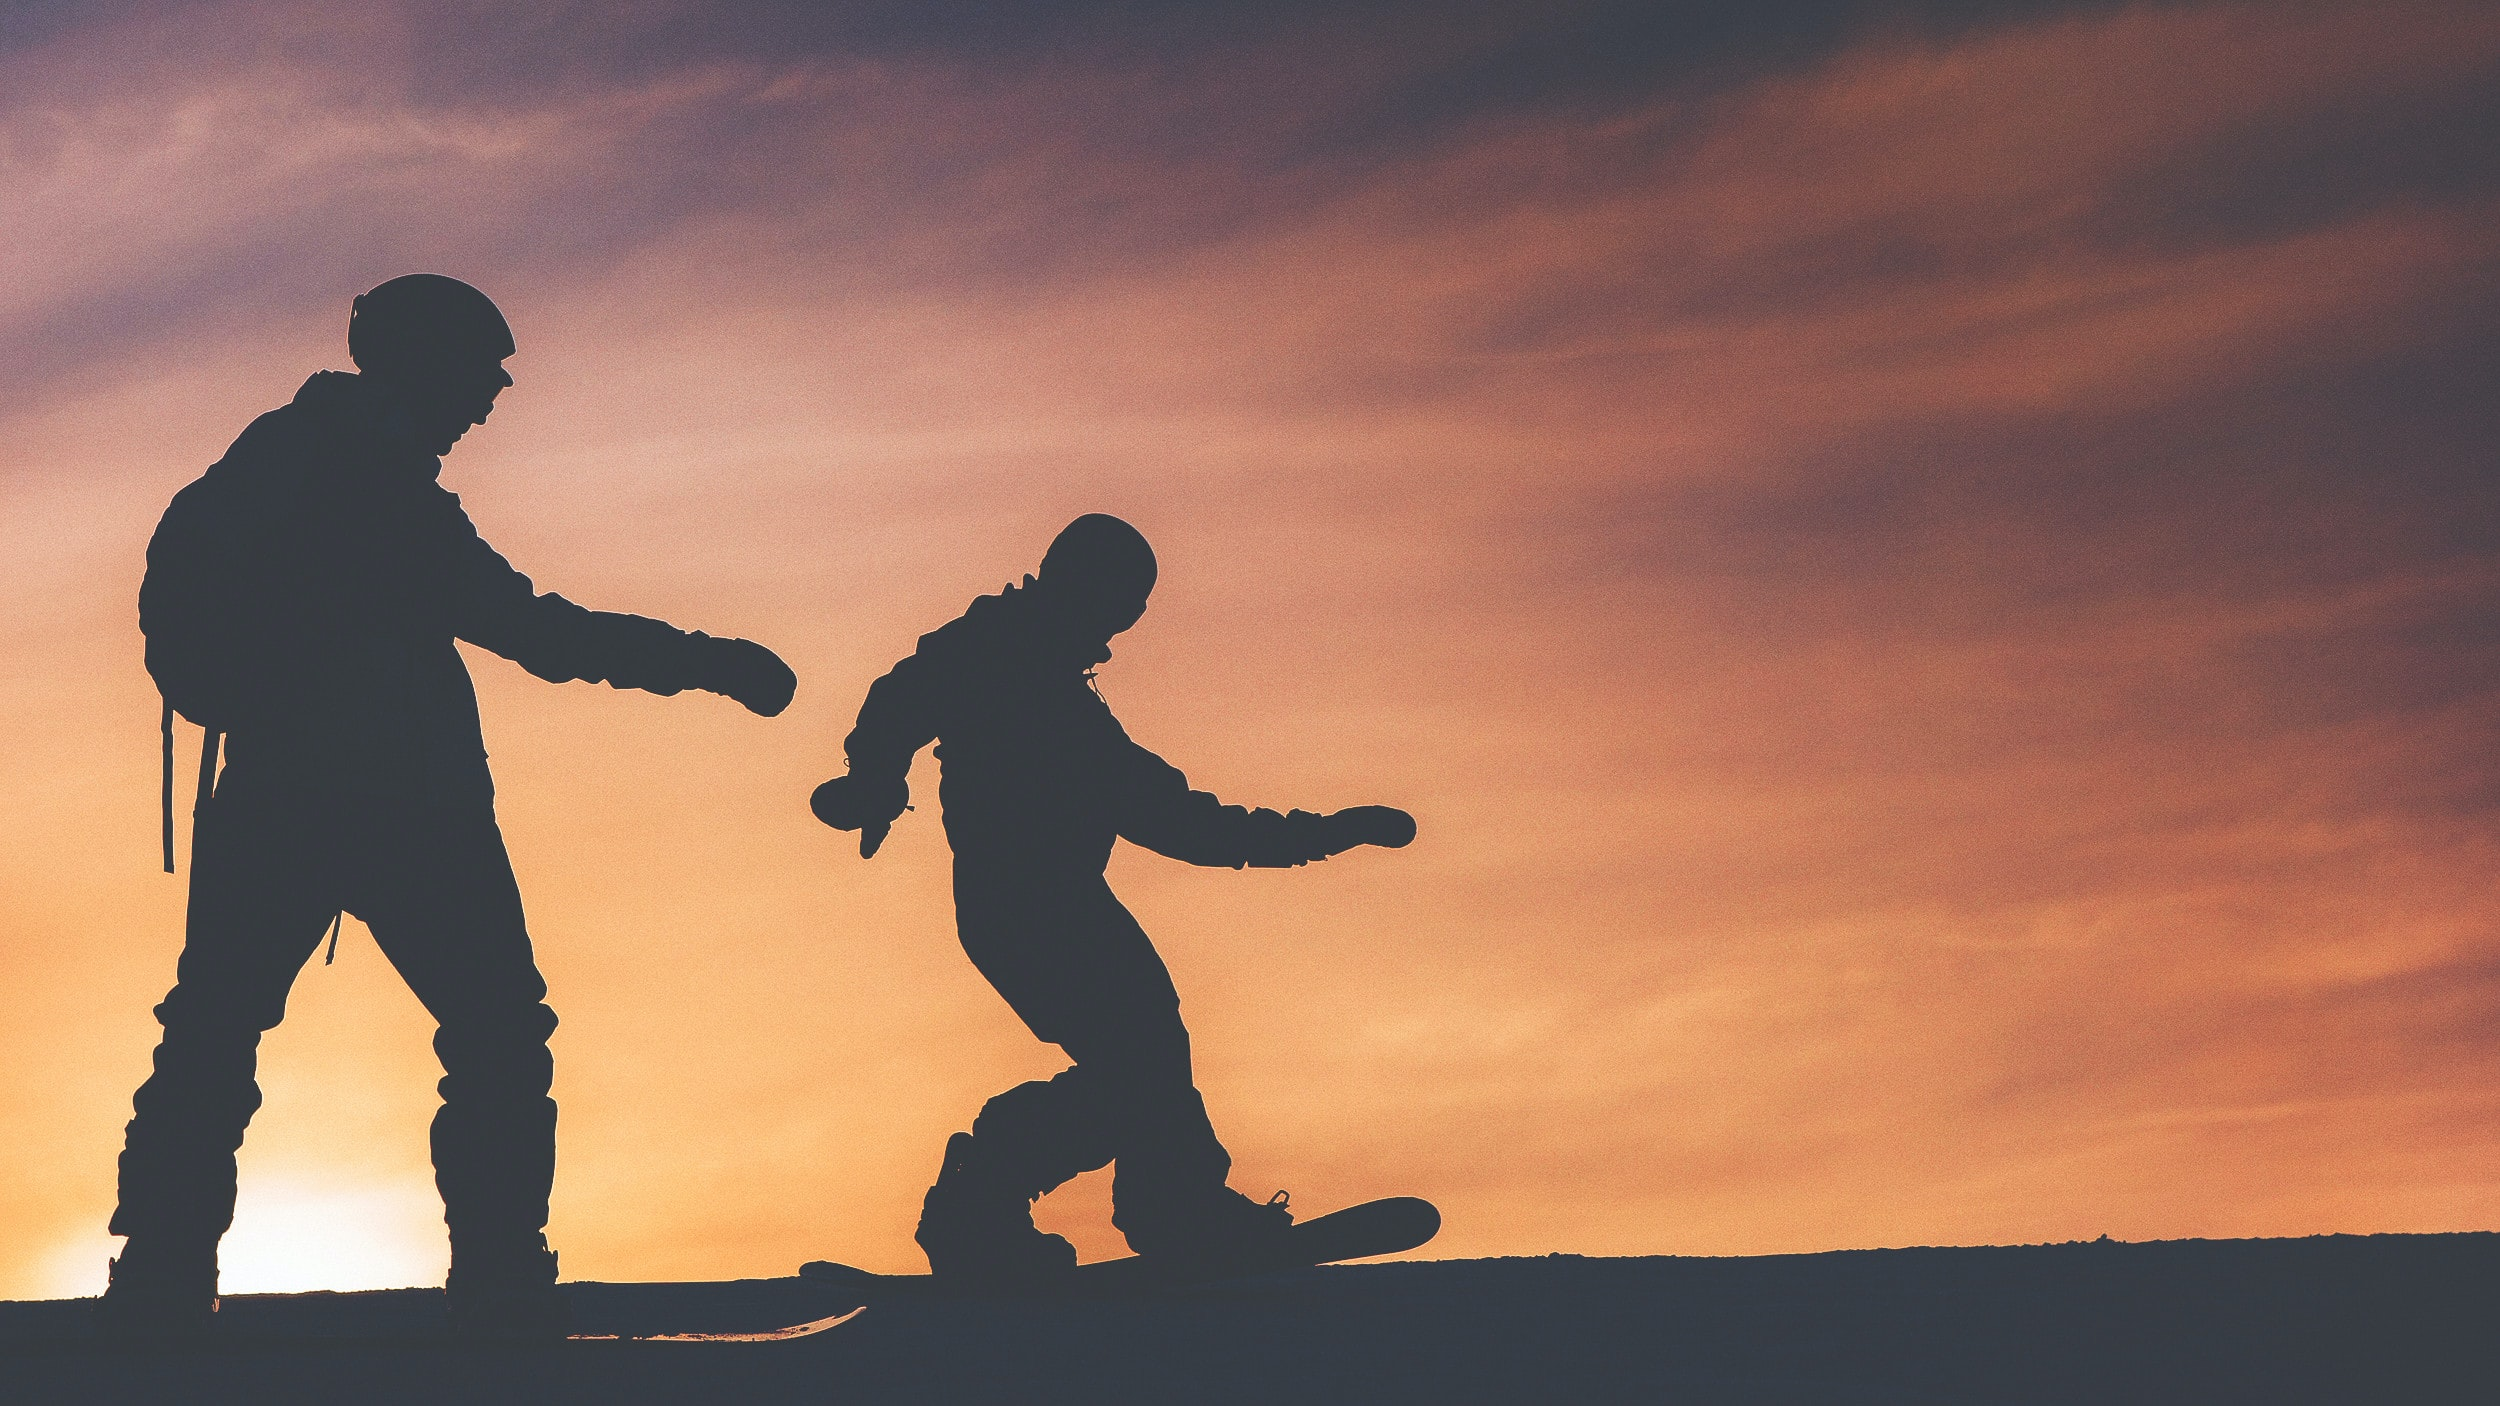 silhouette photo of two person riding on snowboard